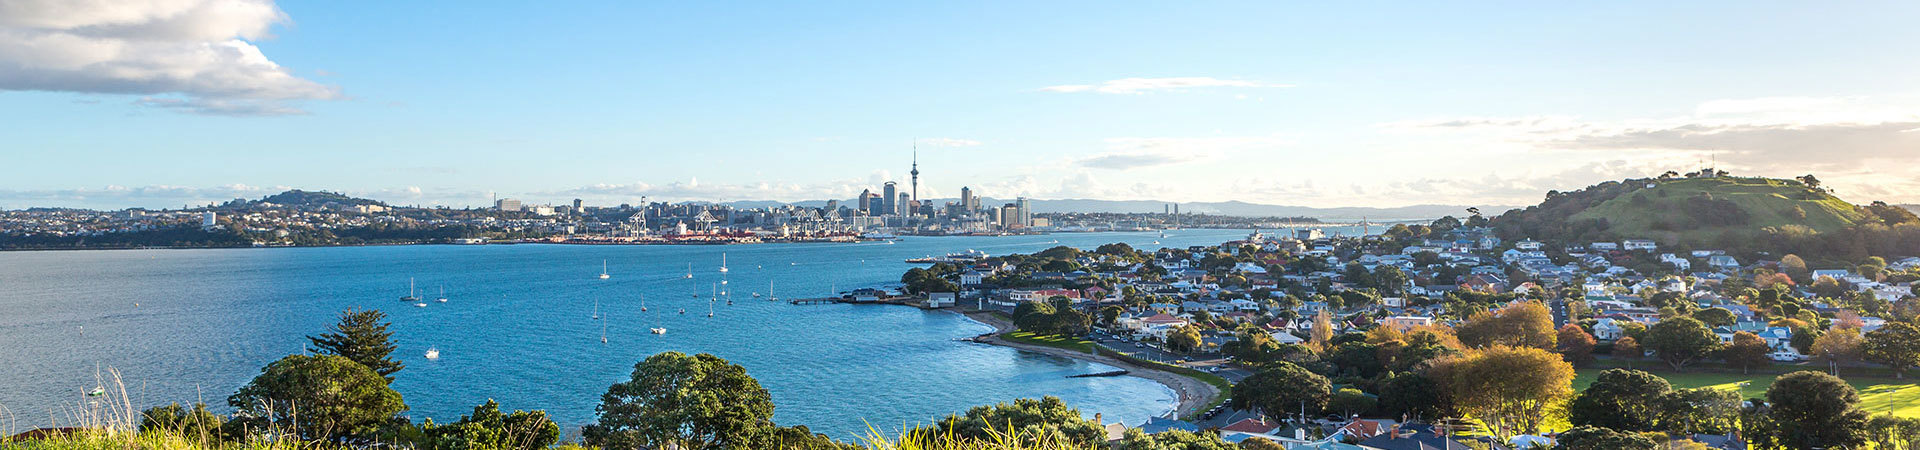 View of Auckland and its harbour, North Island New Zealand